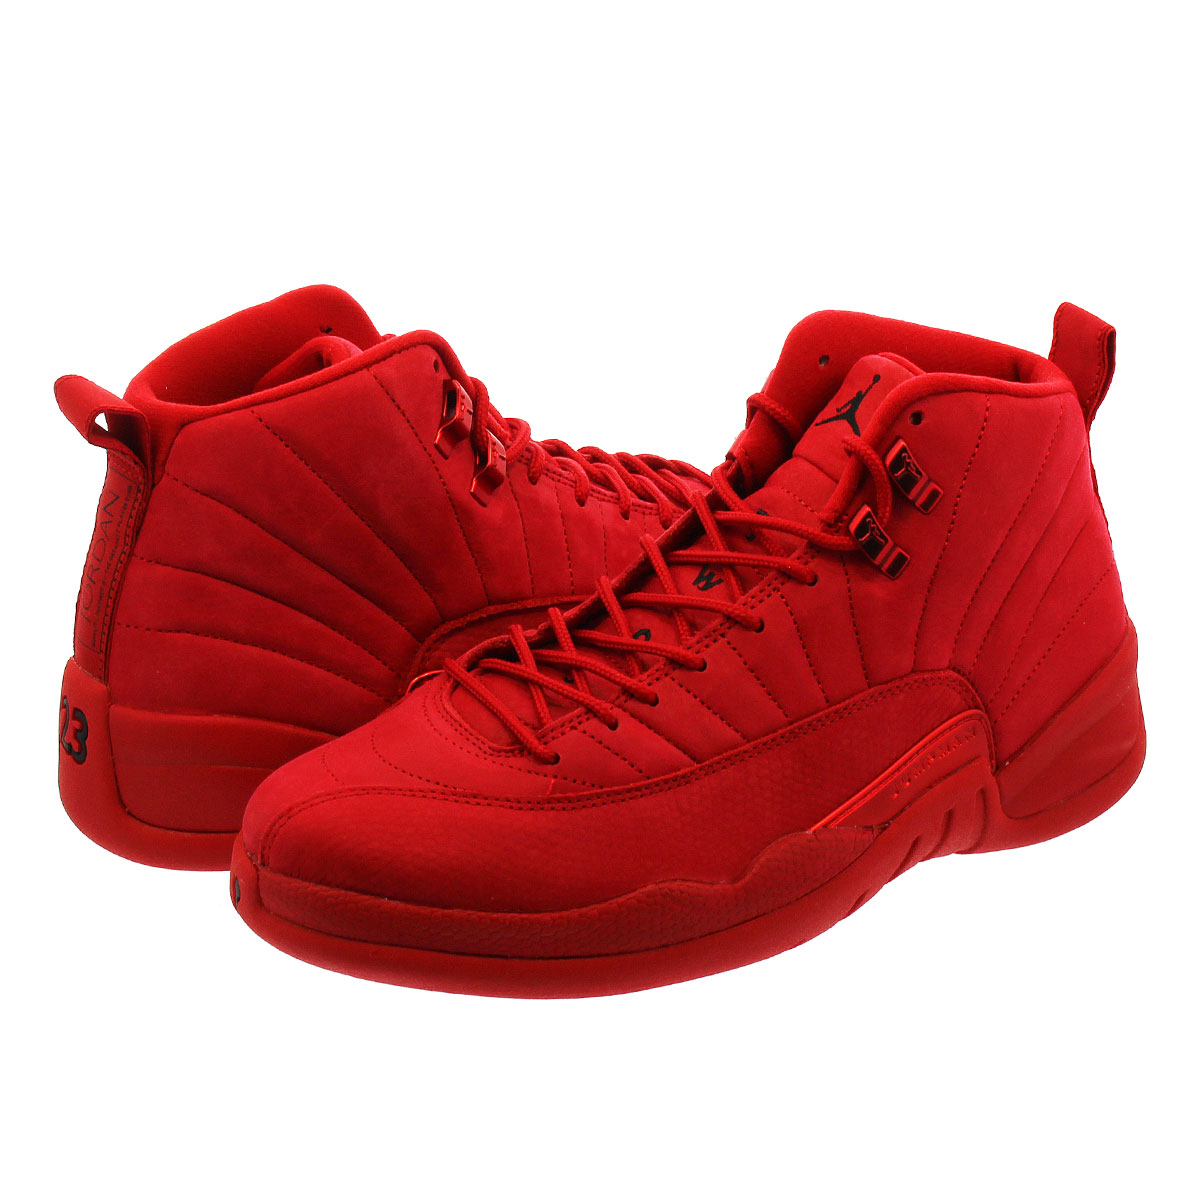 new product 2ee30 003d3 SELECT SHOP LOWTEX: NIKE AIR JORDAN 12 RETRO Nike Air Jordan ...